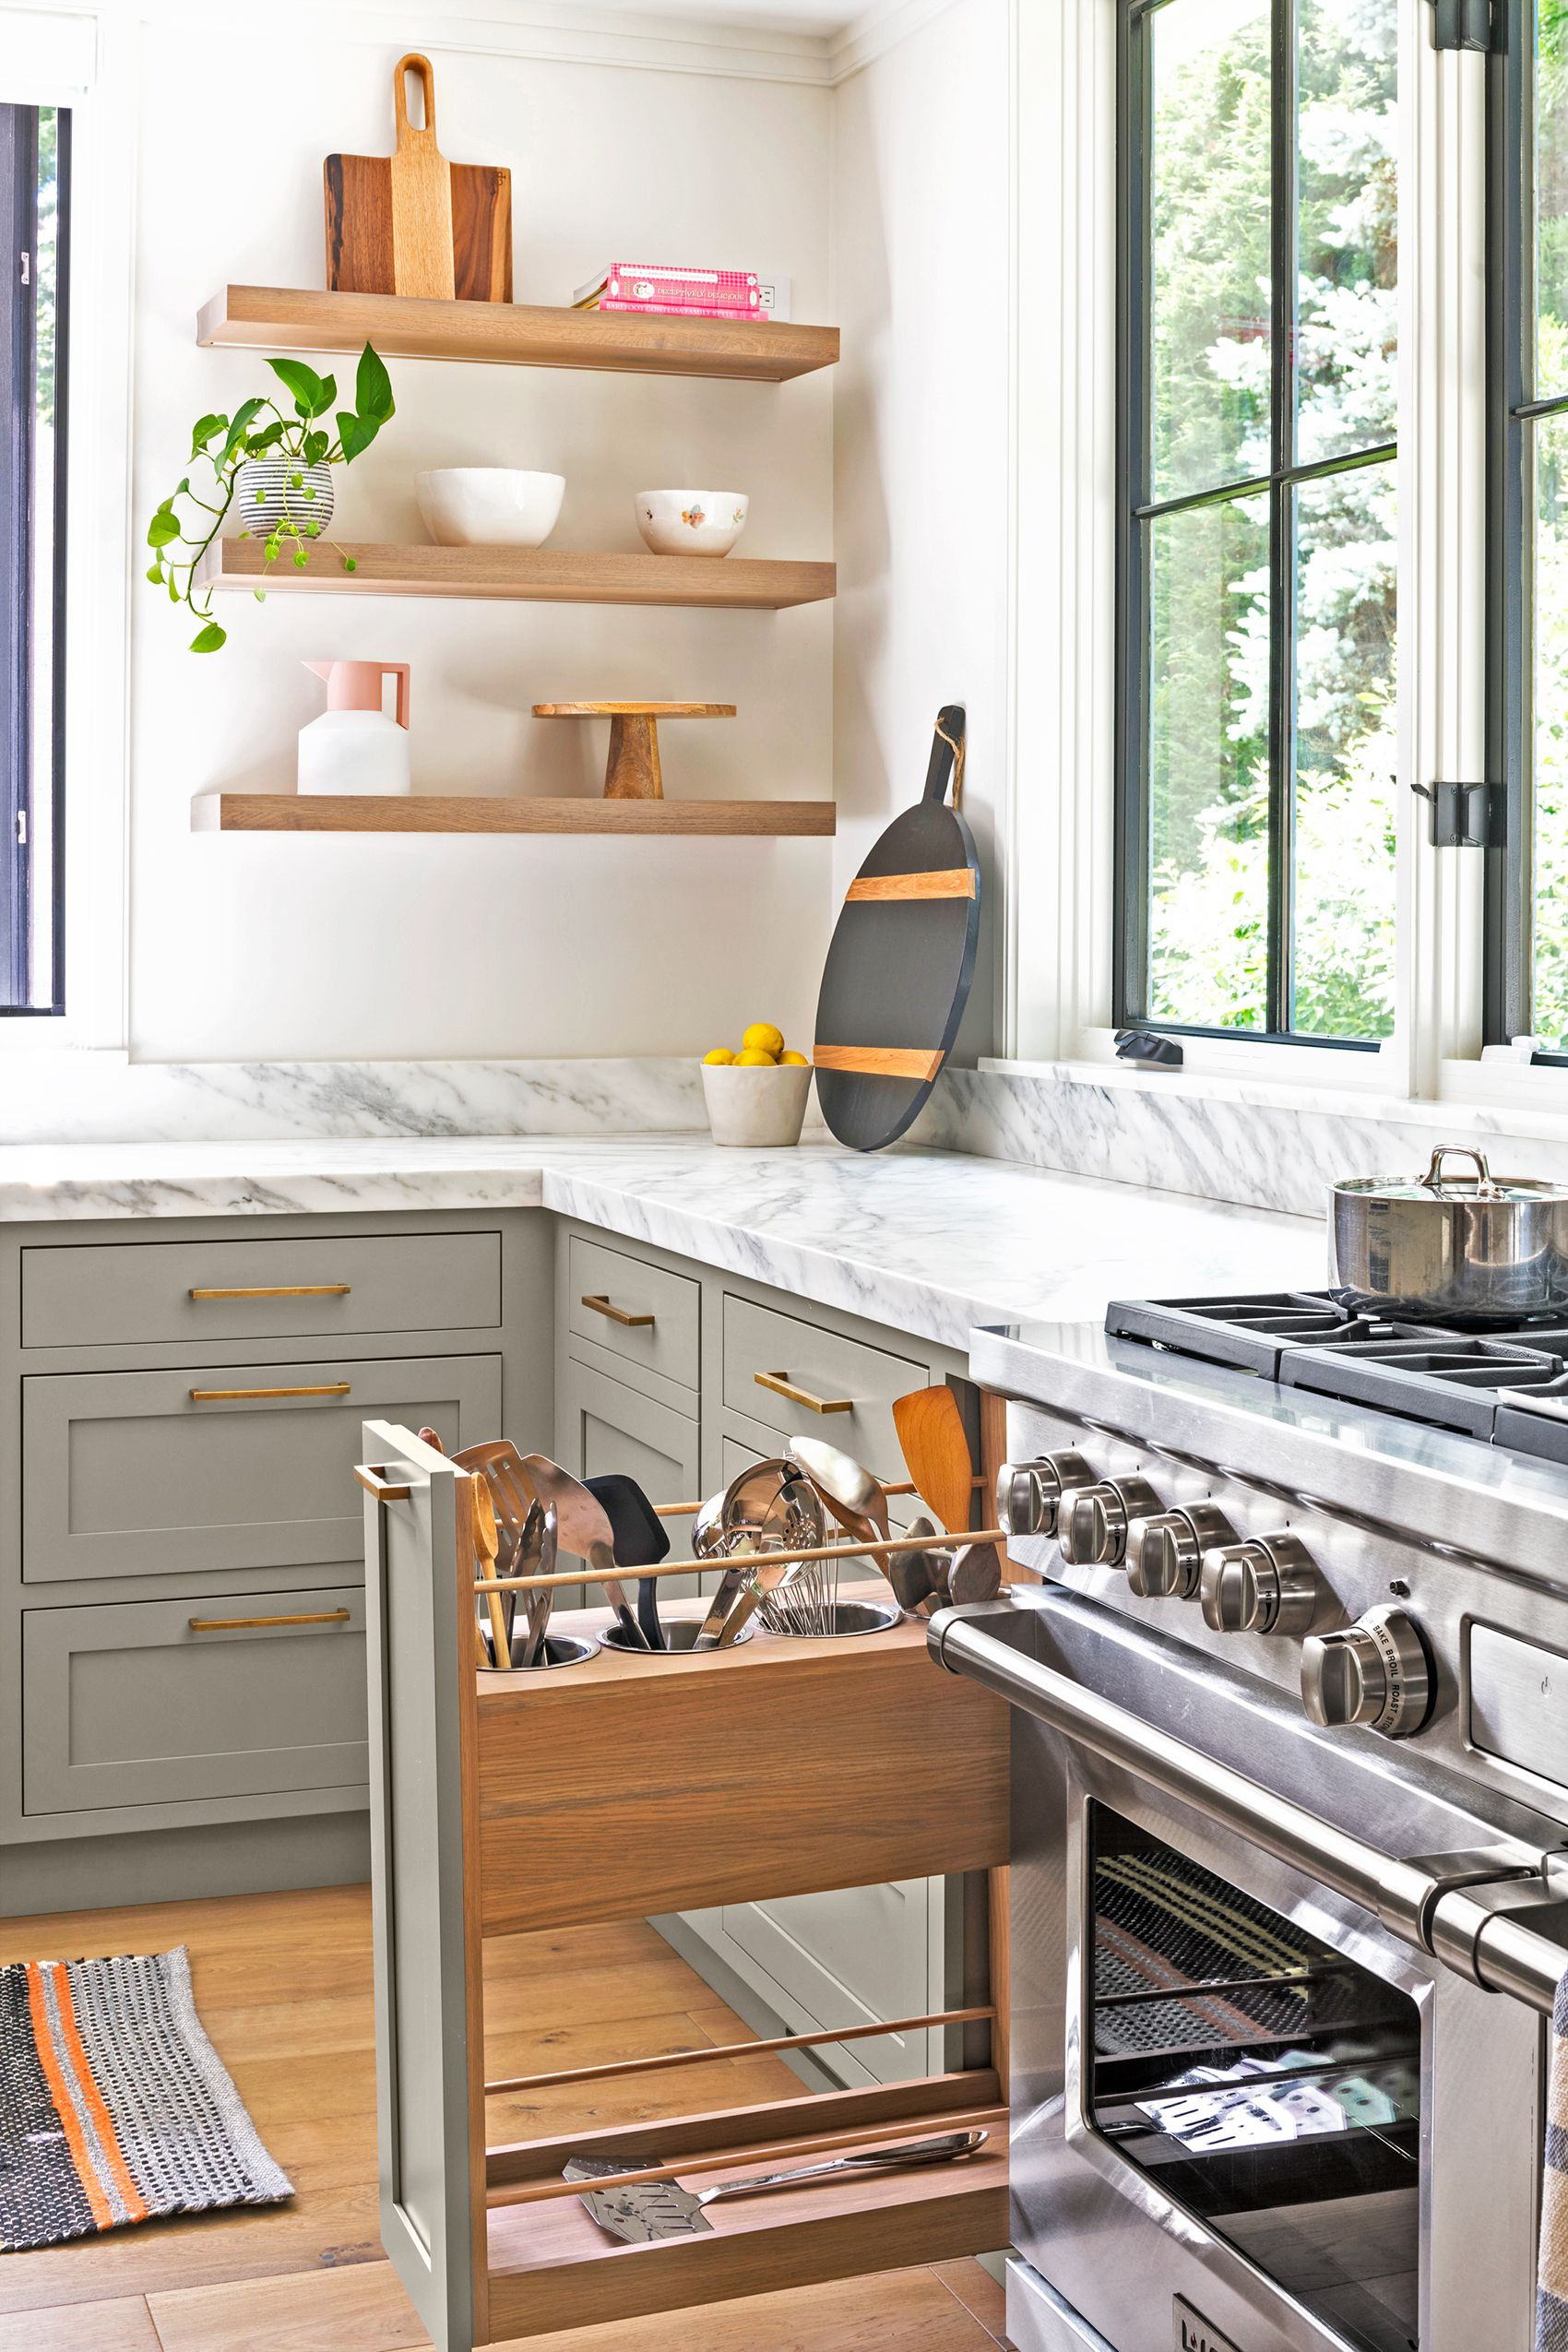 Kitchen Storage Cabinets with Doors Lovely 38 Unique Kitchen Storage Ideas Easy Storage solutions for